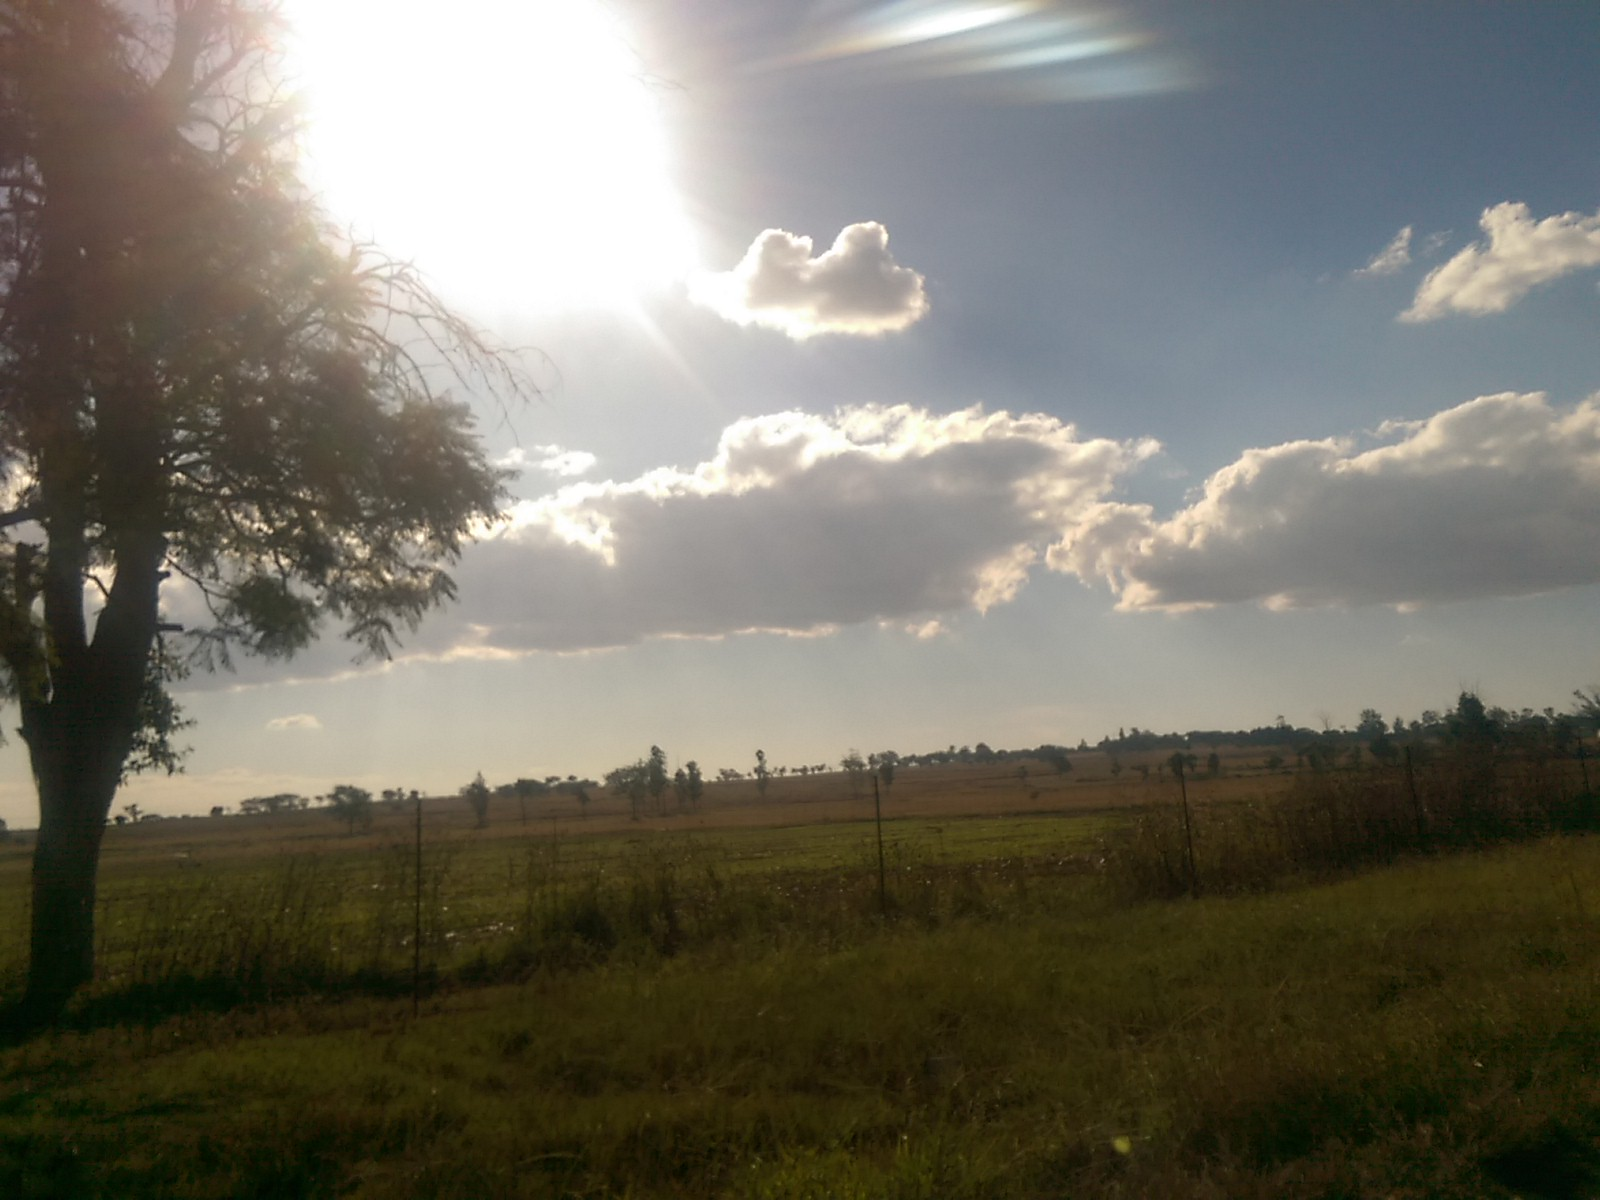 Scrubby green and yellow fields, a tree on the left, blue sky with some fluffy white clouds and a glaring sun blaze in the upper left